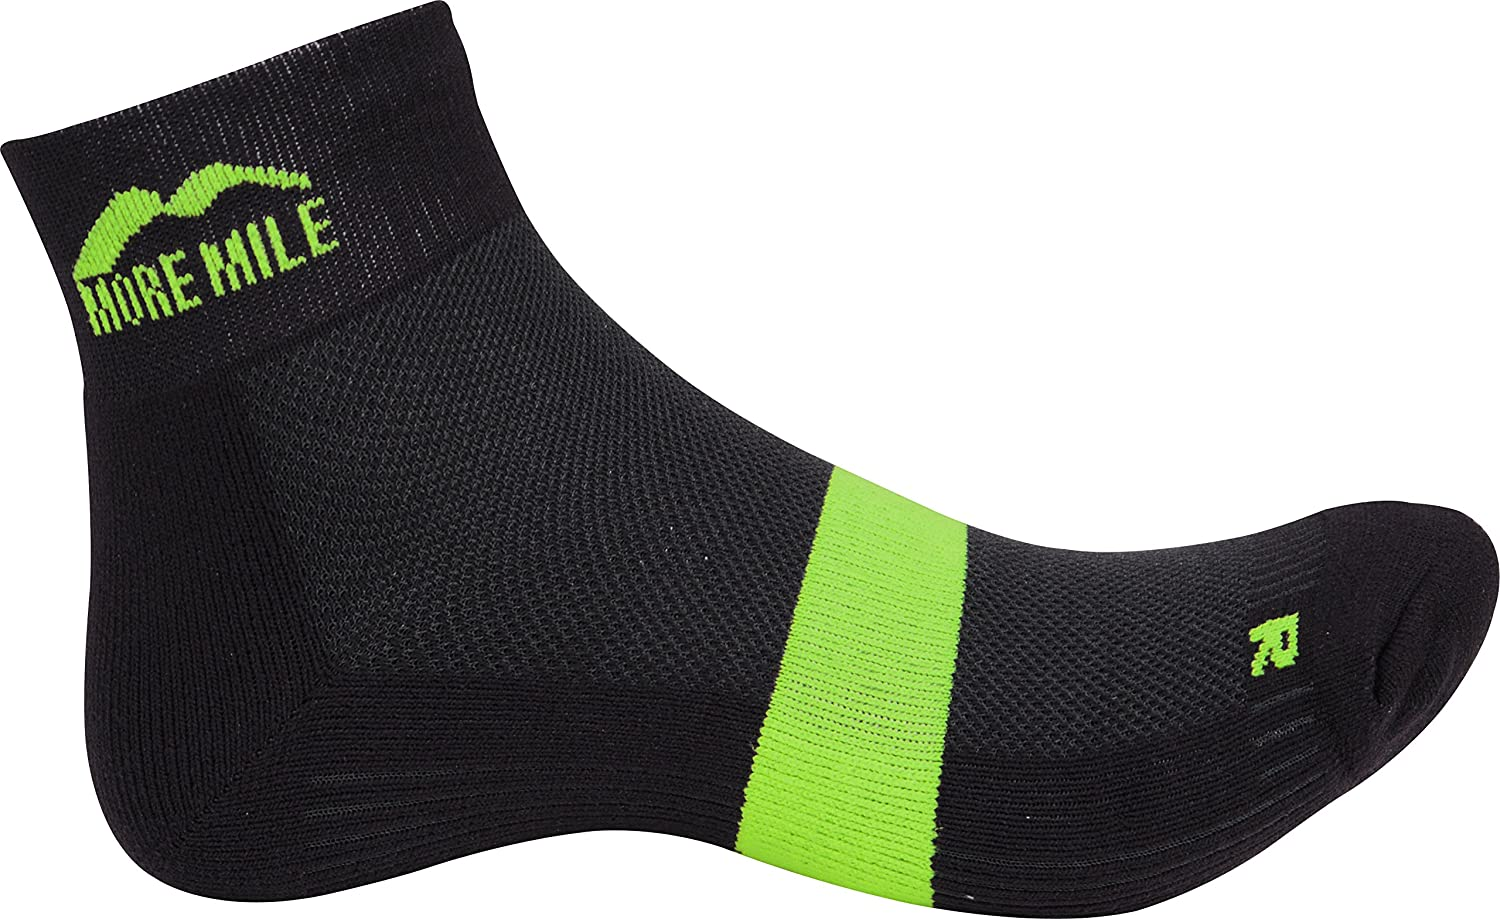 More Mile London Running Socks Mens Womens Cushioned Support Sports Sock/'s Grey